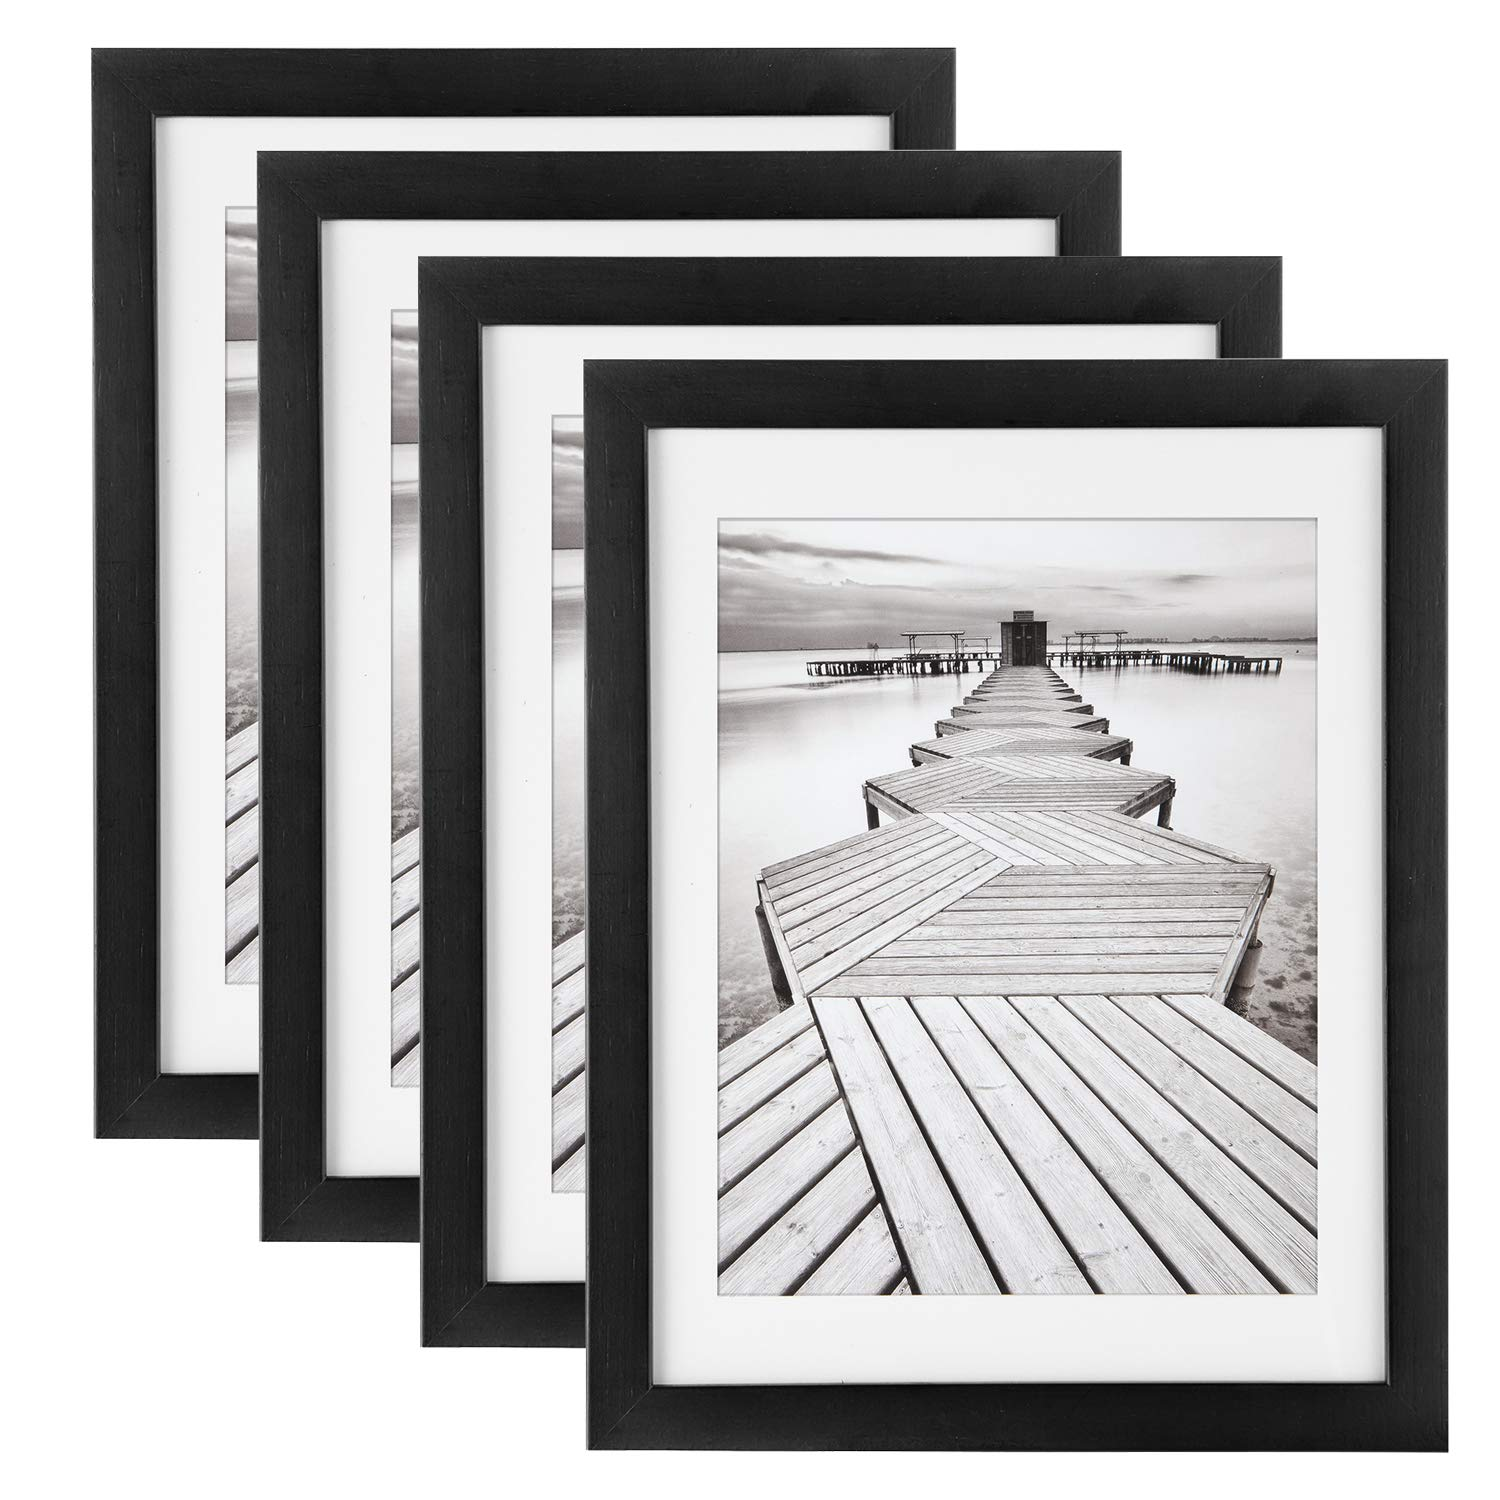 UnityStar 11x14 Picture Frames, Matted to 8x10 Frame, Solid Wood and Tempered Glass, Wall Mounting Photo Frame for Wedding Party Family, 4-Pack, Black by UnityStar